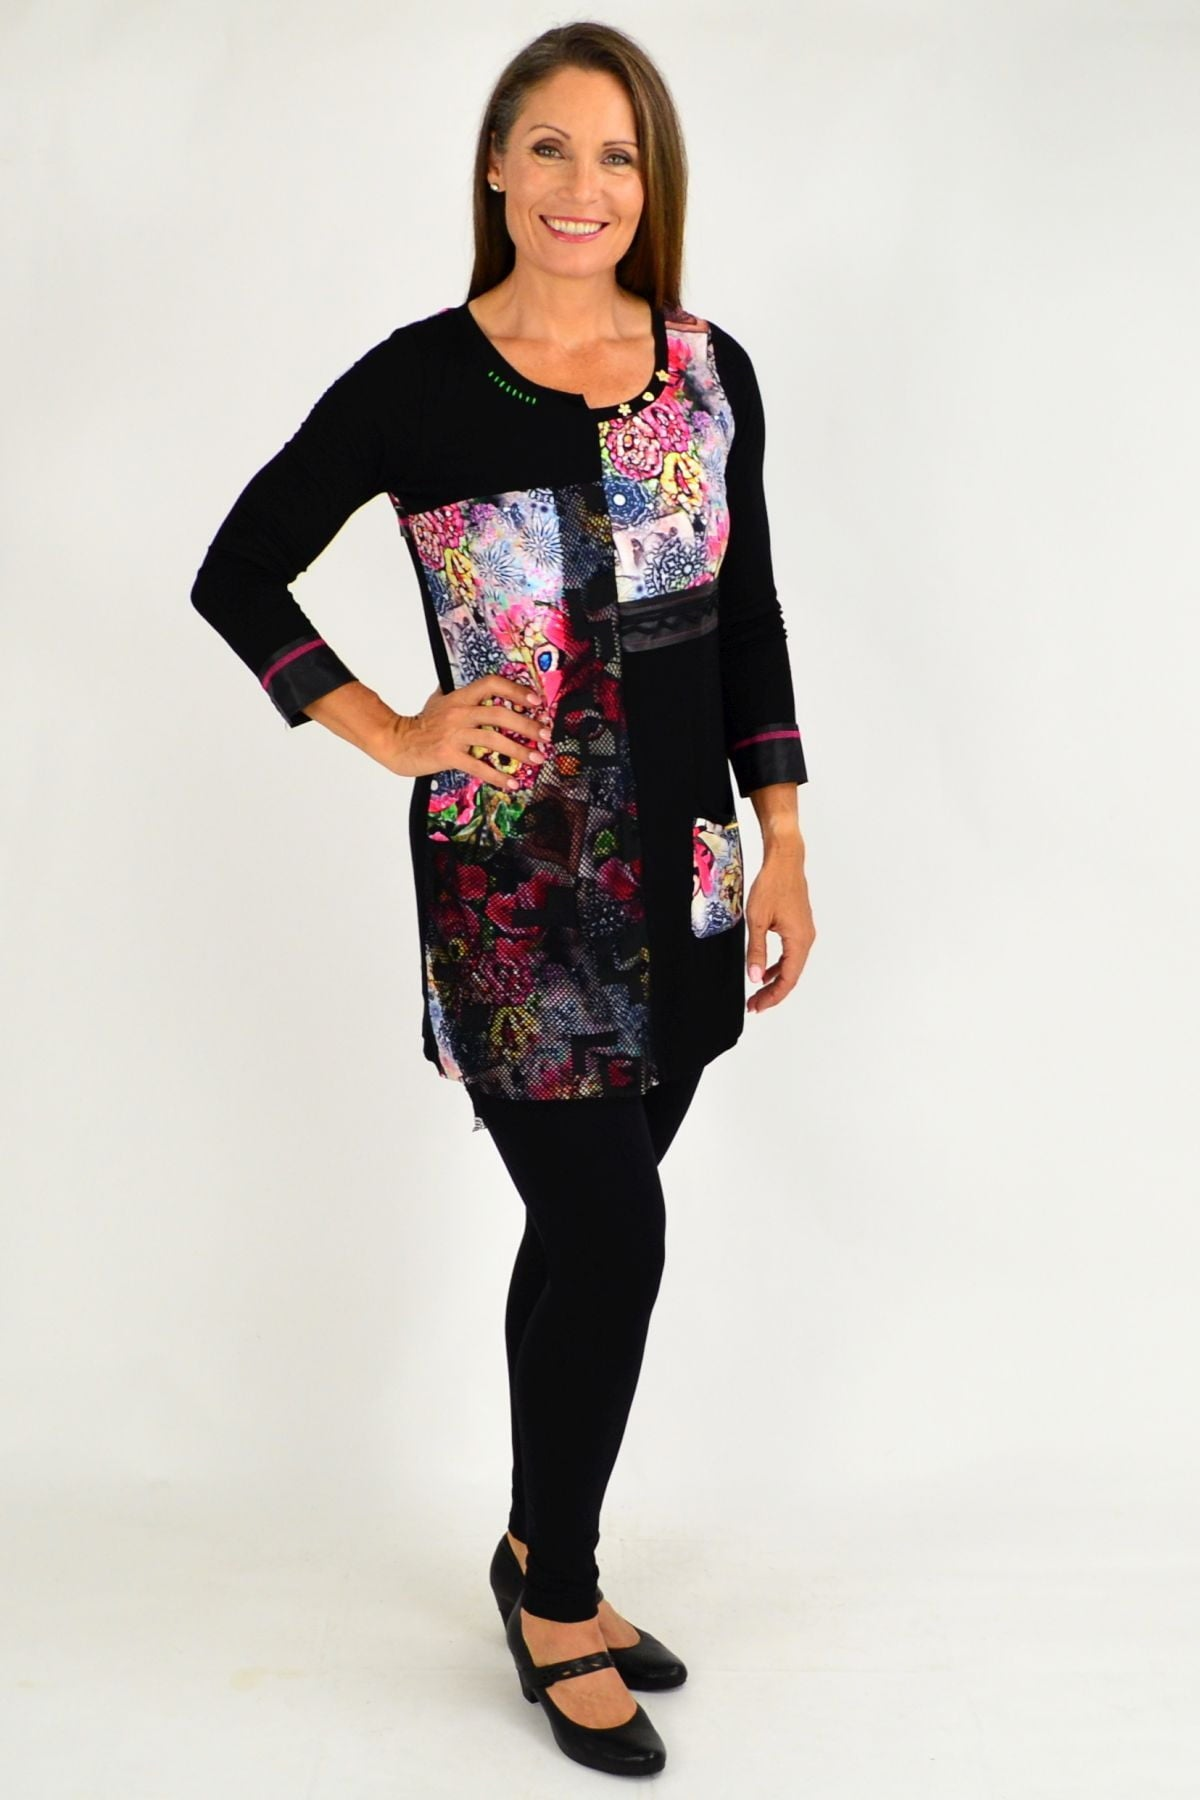 Floral Ellen Tunic Top | I Love Tunics | Tunic Tops | Tunic | Tunic Dresses  | womens clothing online